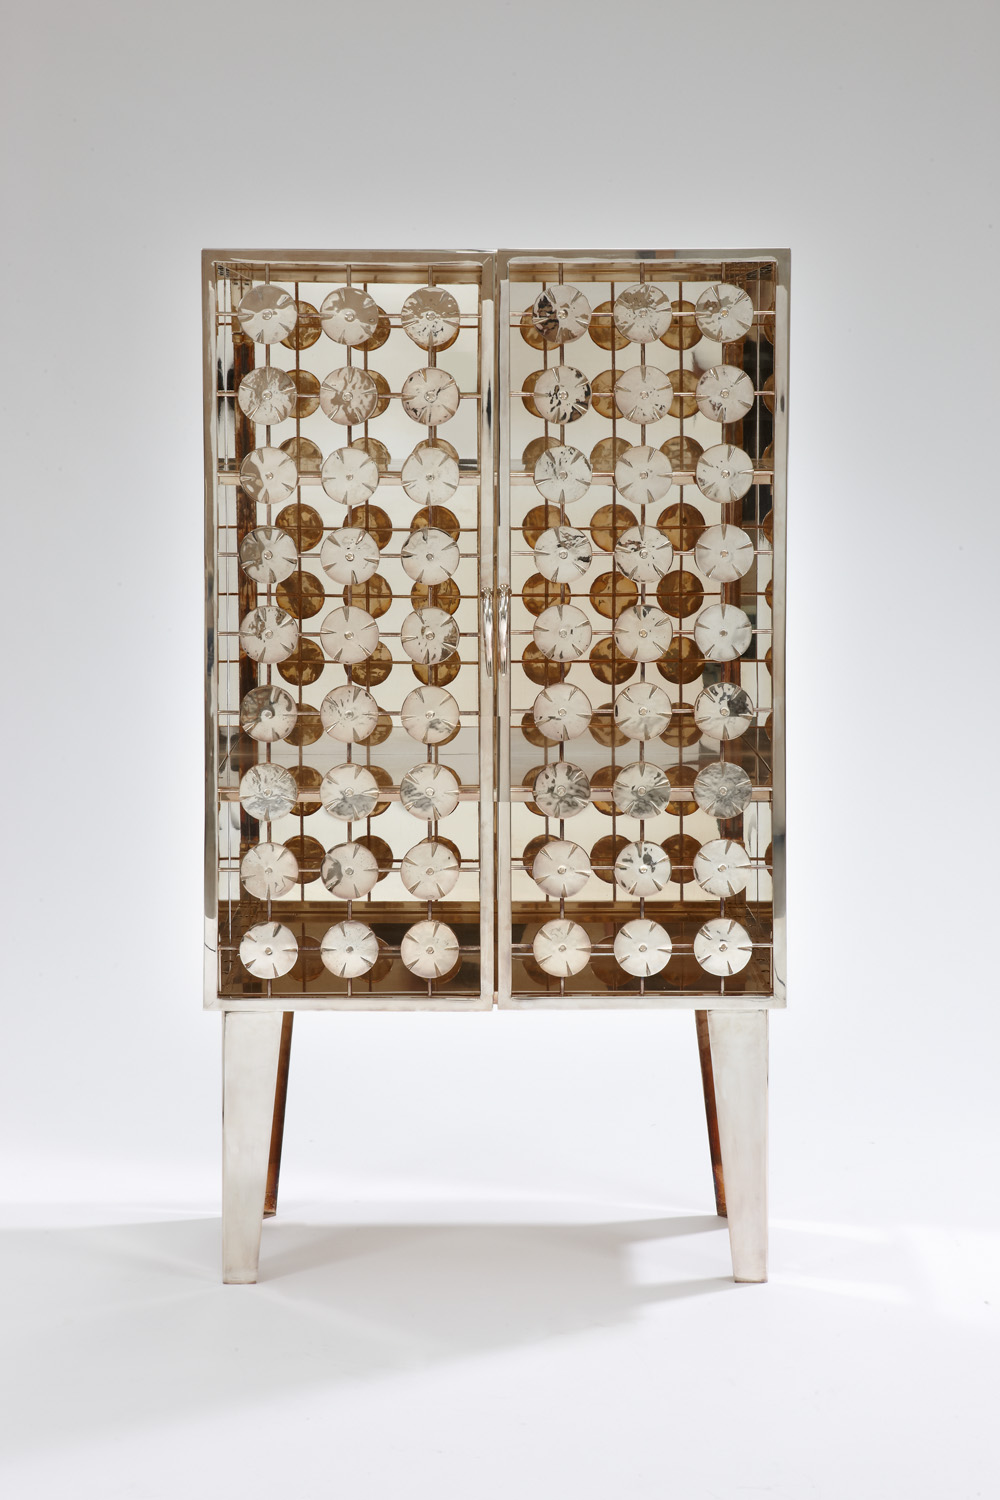 2. B&G Cabinet 'Flowers in the Air'.jpg